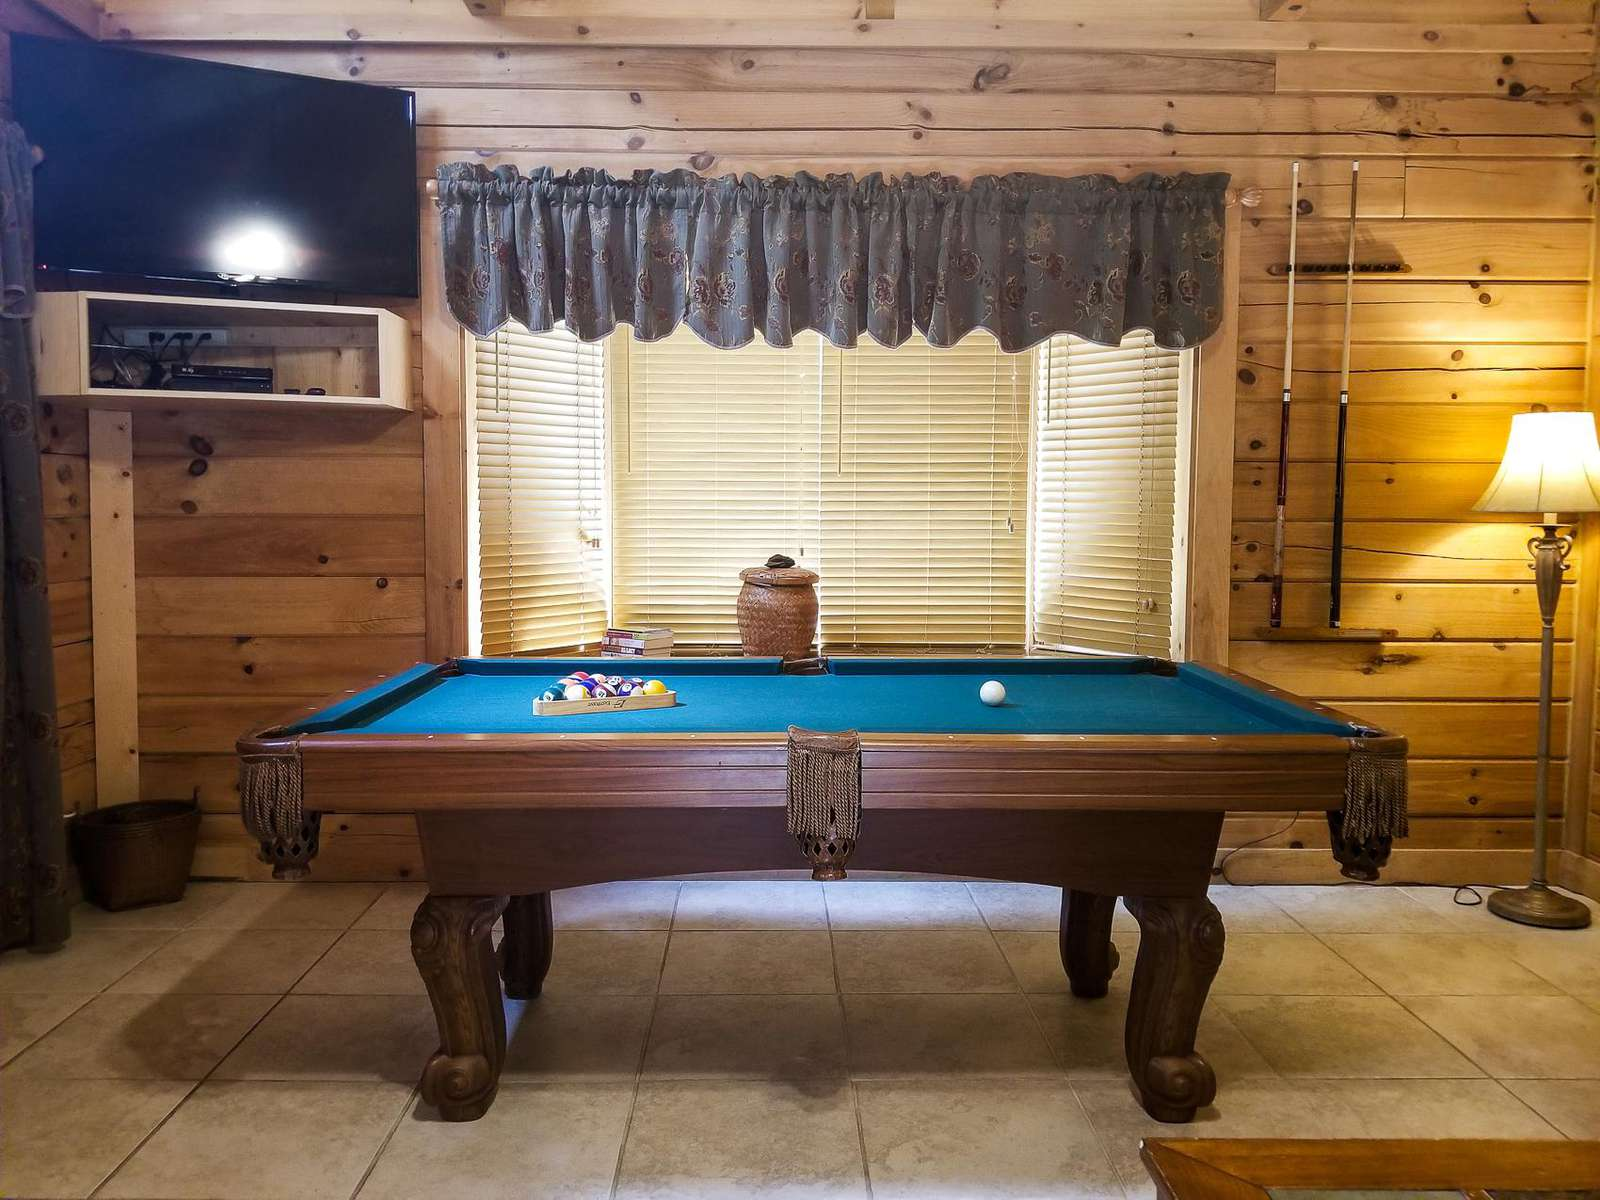 Pool Table Located in the Great Room